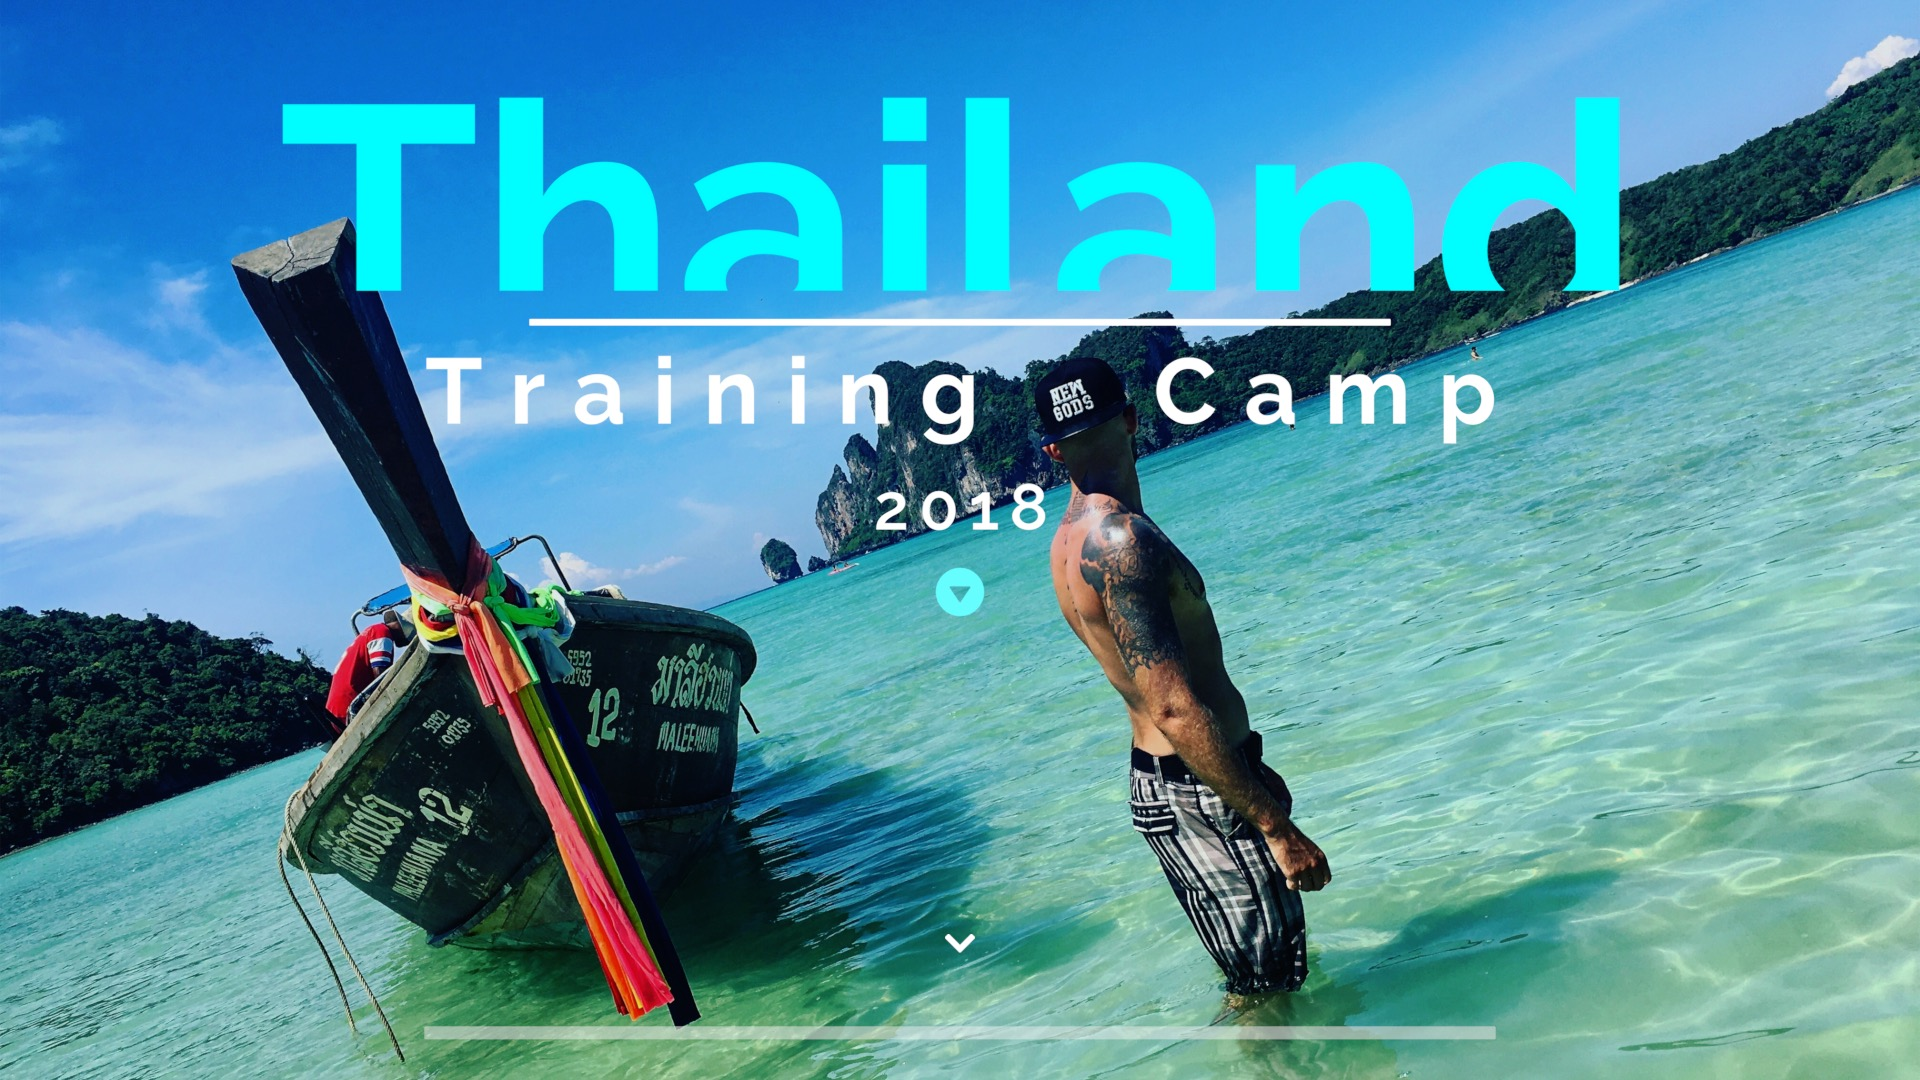 Traveling Back to Thailand! The Next Training Camp in Paradise